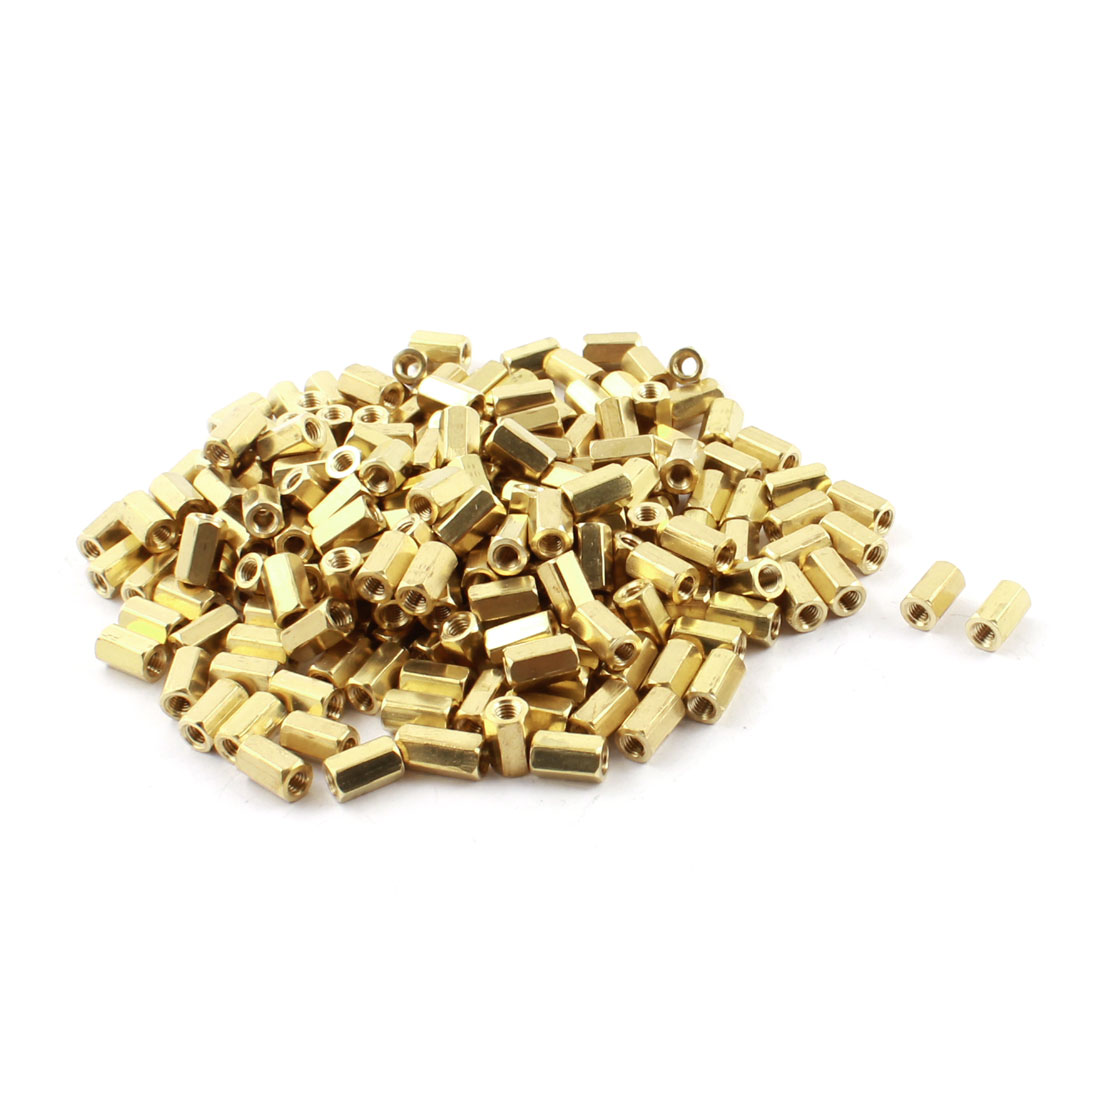 200Pcs M3 x 8mm Female Thread Two Ended Gold Tone Brass Pillar PCB Standoff Hexagonal Nut Spacer